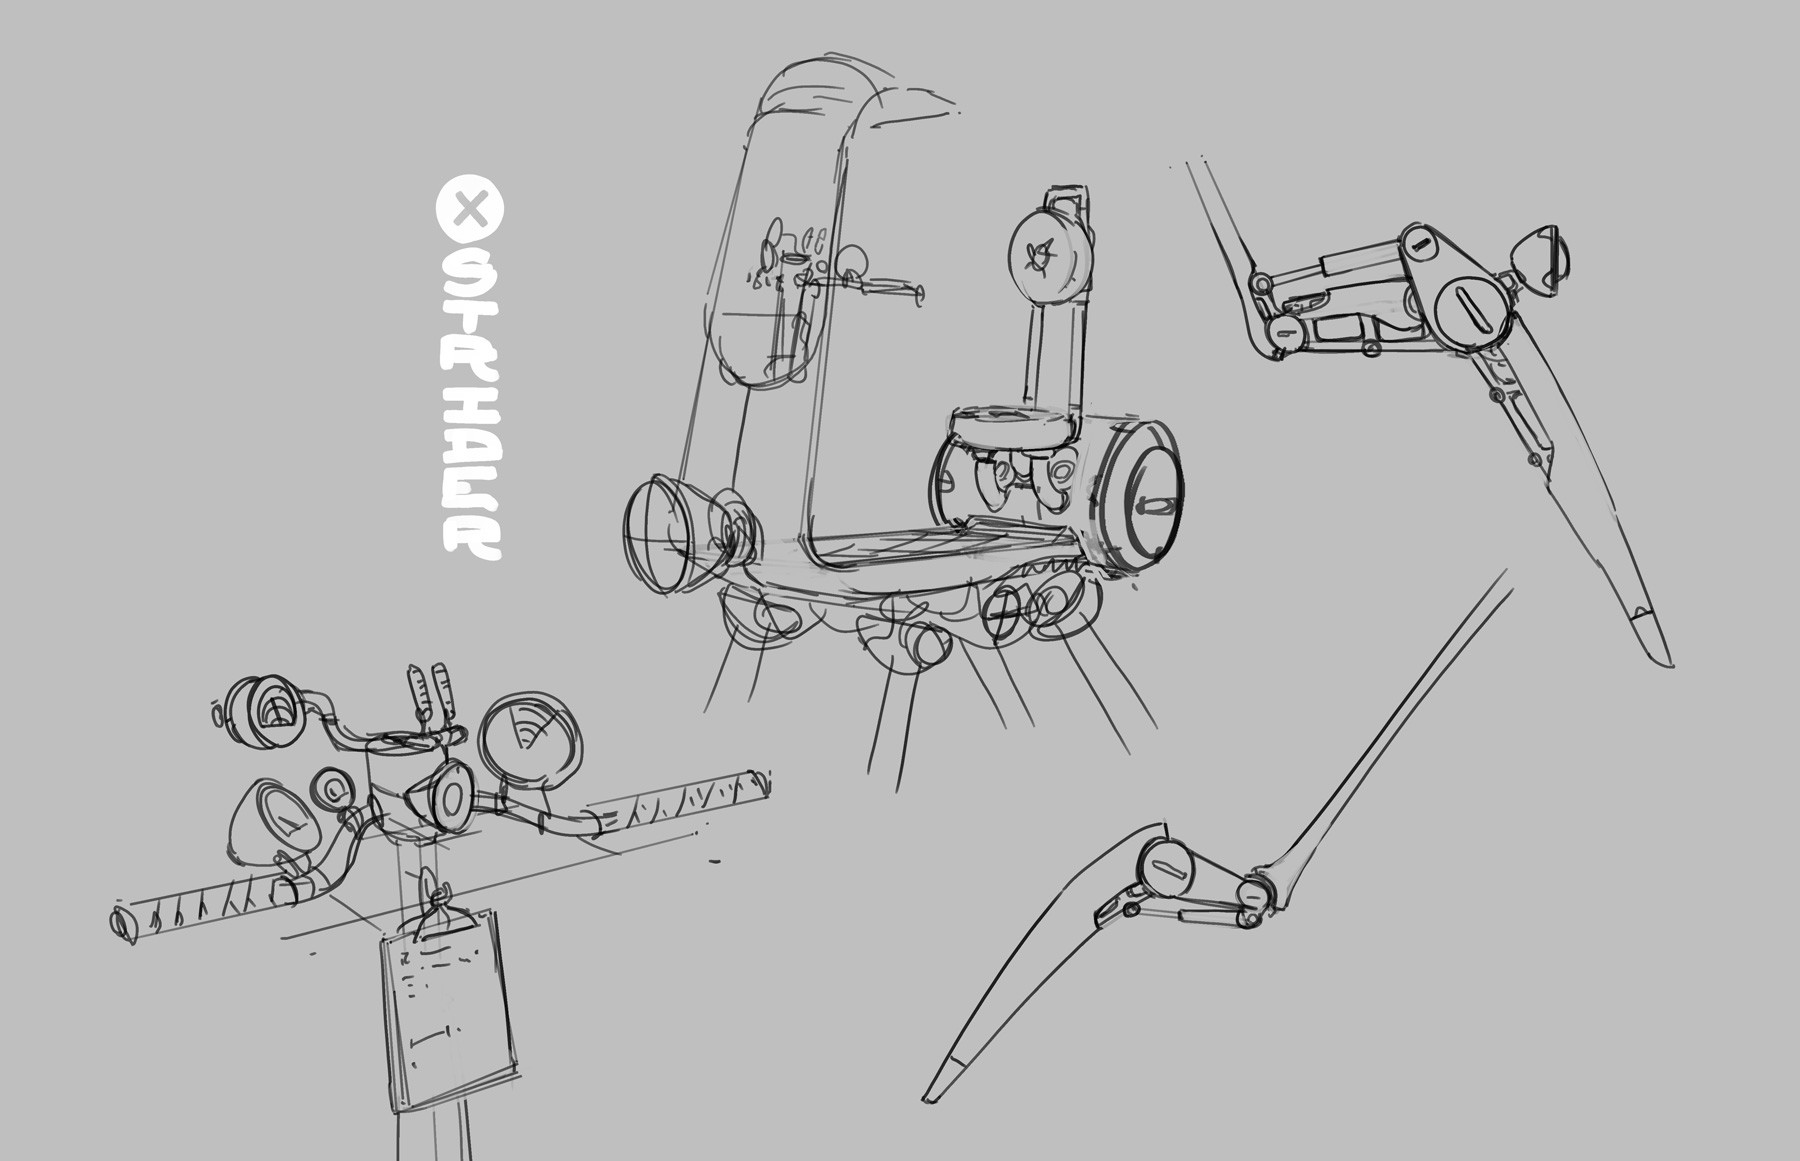 Samuel herb vespa mech detail sketches